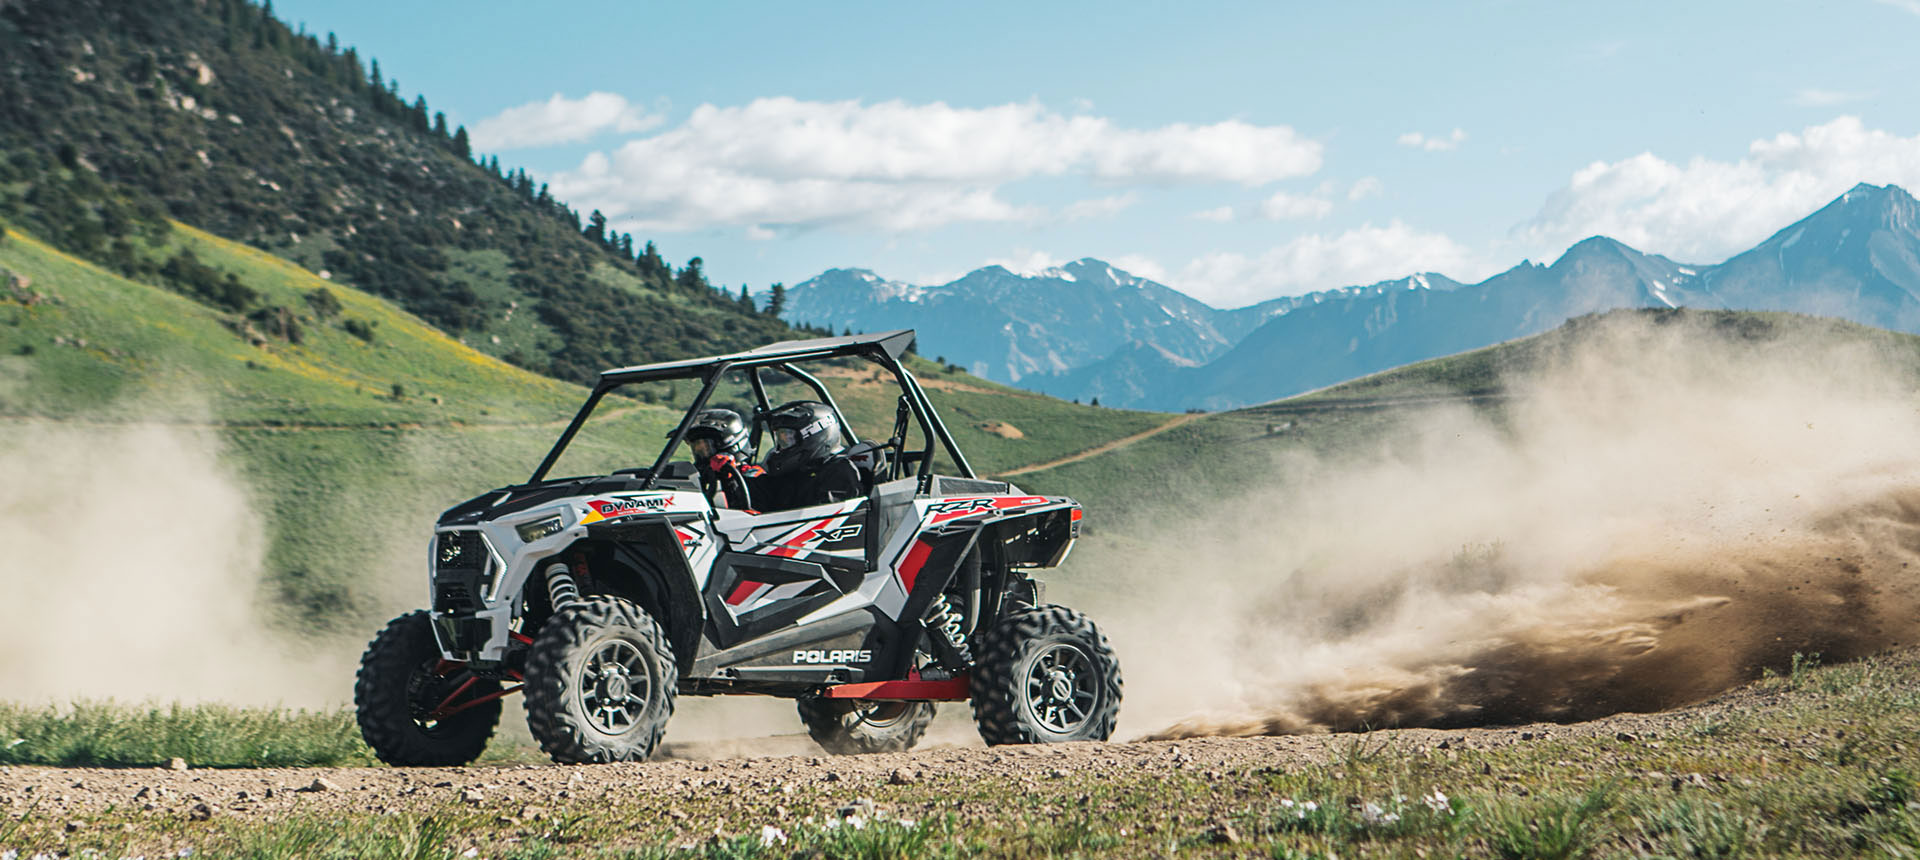 2019 Polaris RZR XP 1000 in Stillwater, Oklahoma - Photo 10